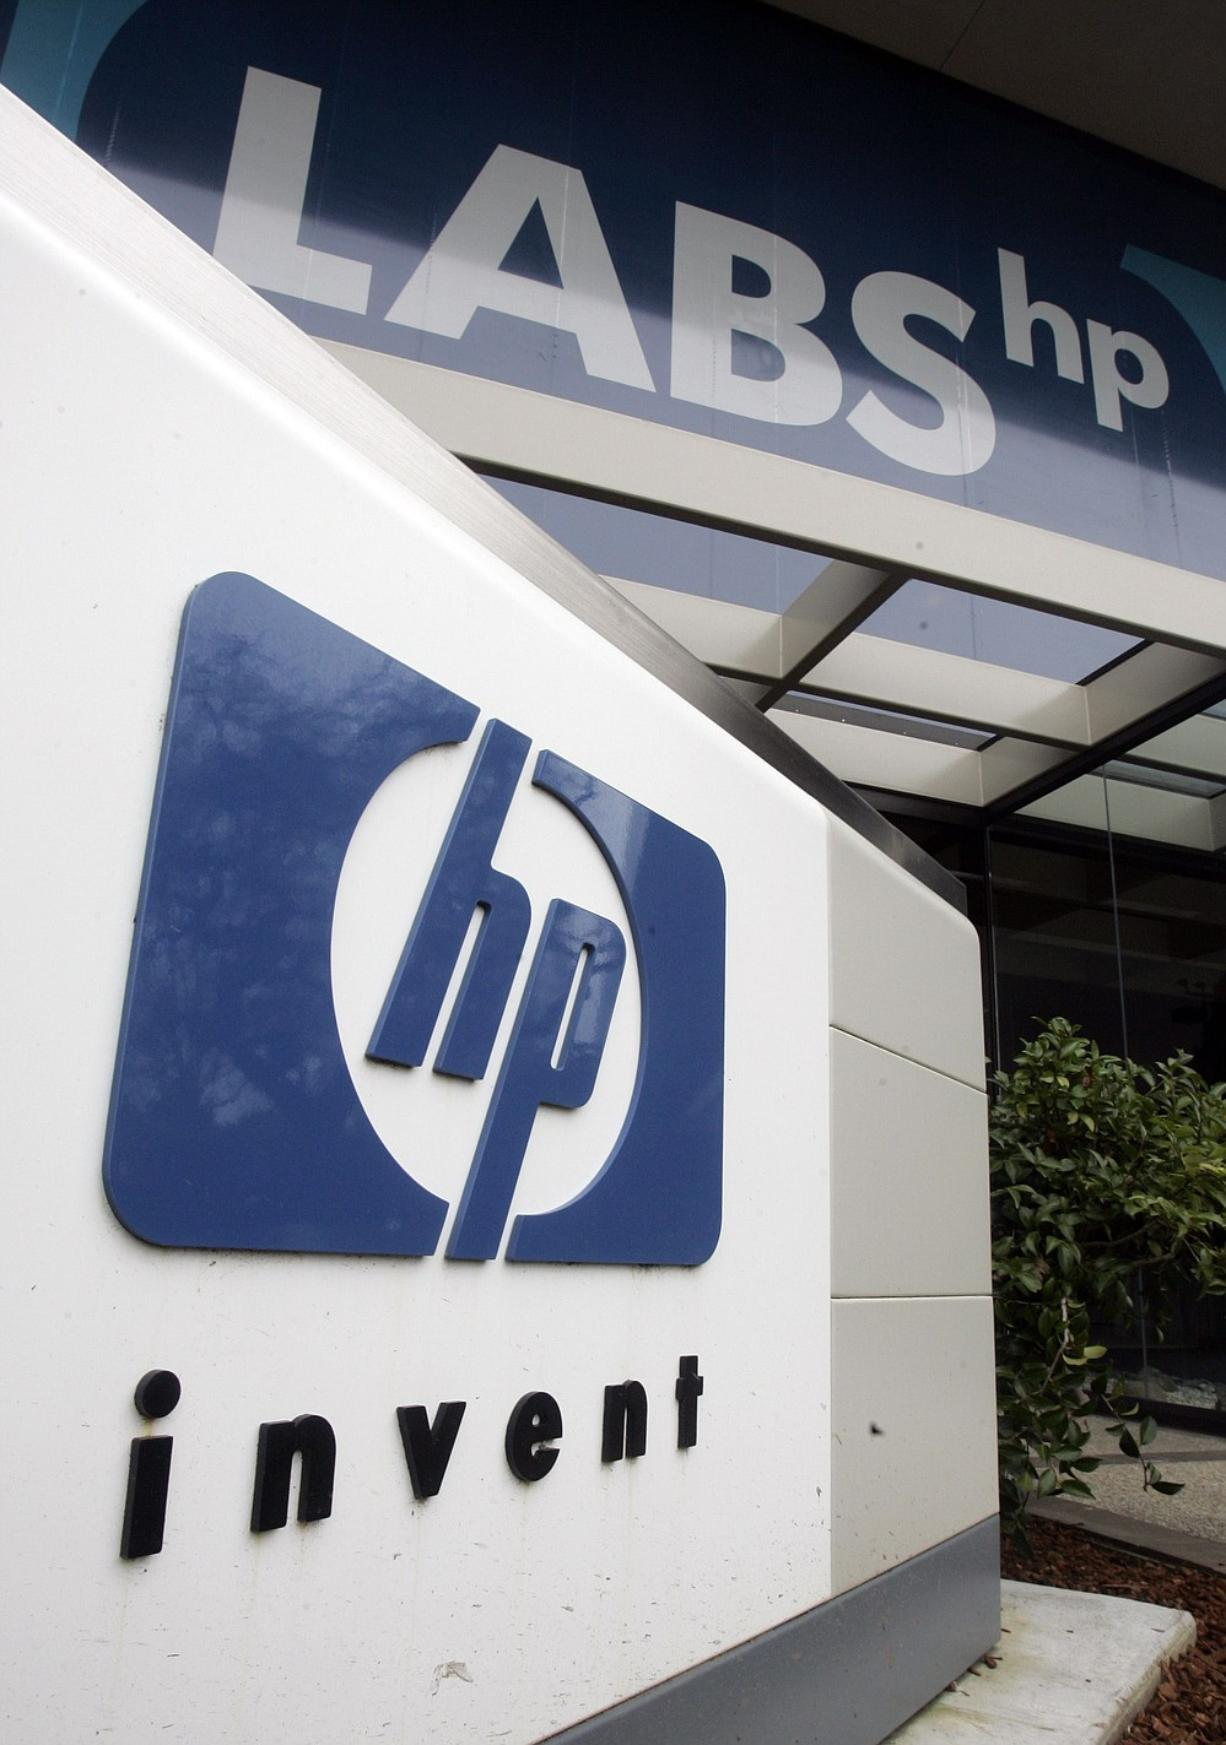 Hewlett-Packard Co. said Thursday that it will discontinue its tablet computer and smartphone products and may sell or spin off its PC division, bowing out of the consumer businesses.